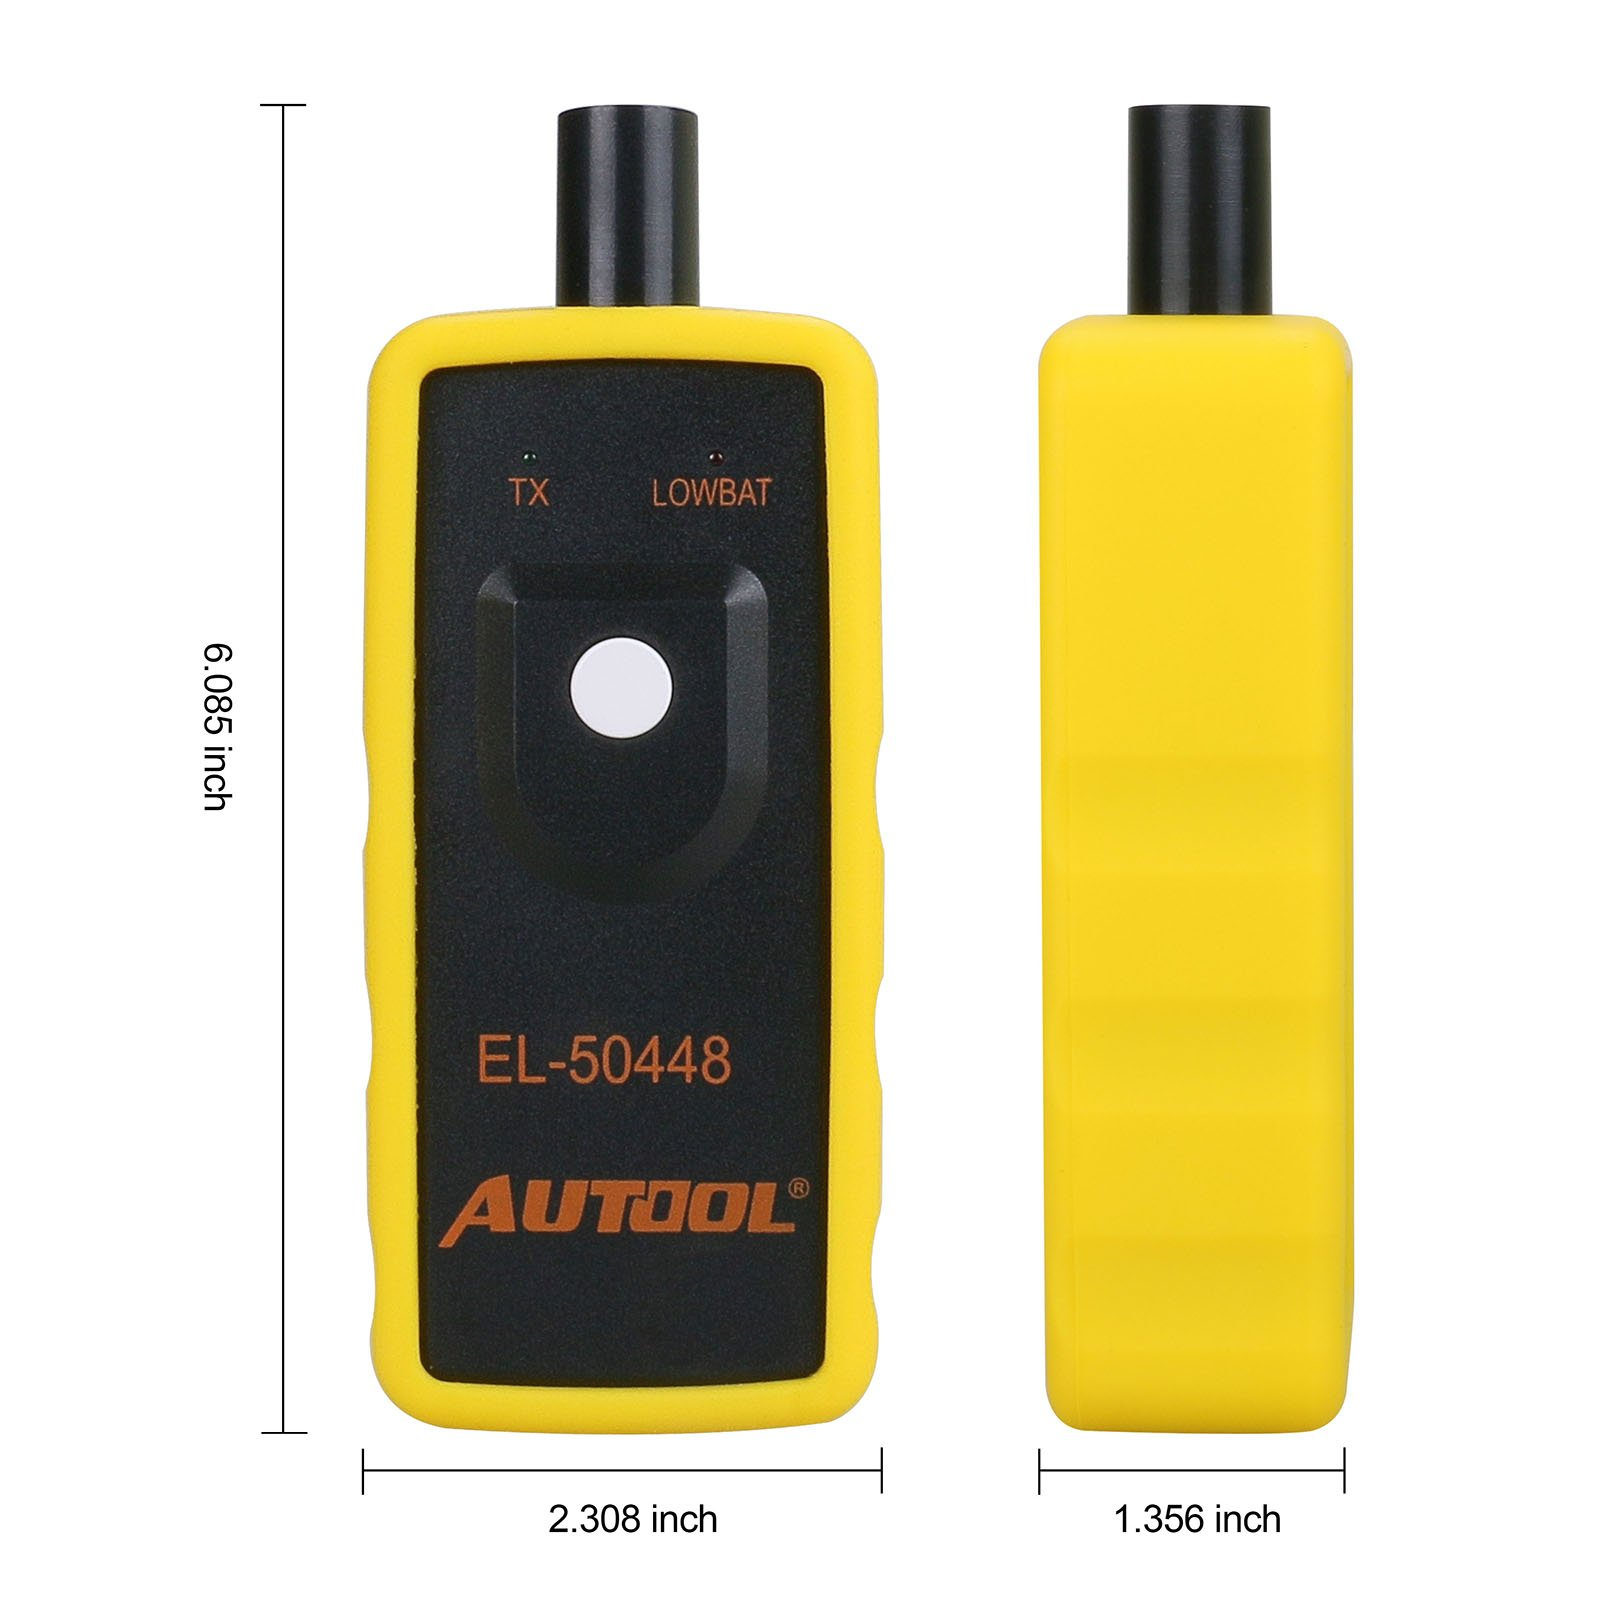 AUTOOL EL-50448 Auto Tire Pressure Monitor Sensor TPMS Activation Relearn Tool For GM Series Vehicles 315MHZ and 433MHZ